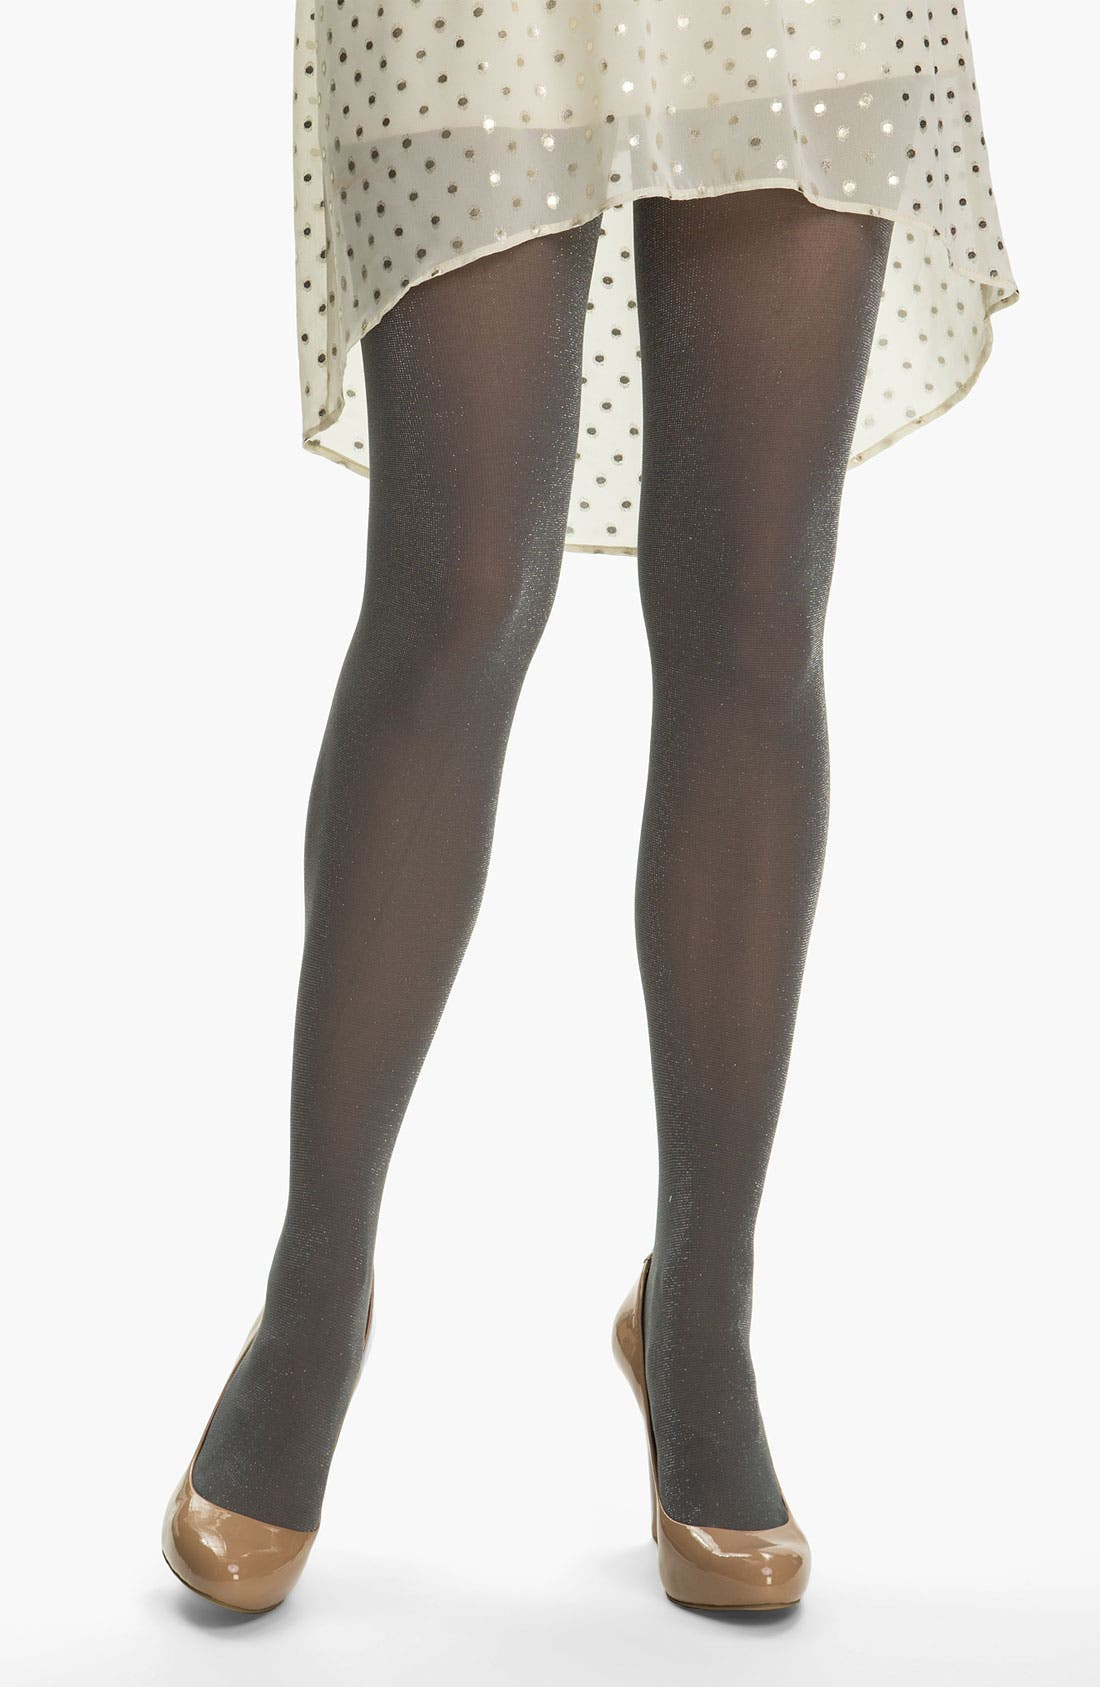 Alternate Image 1 Selected - DKNY 'Shimmer' Tights